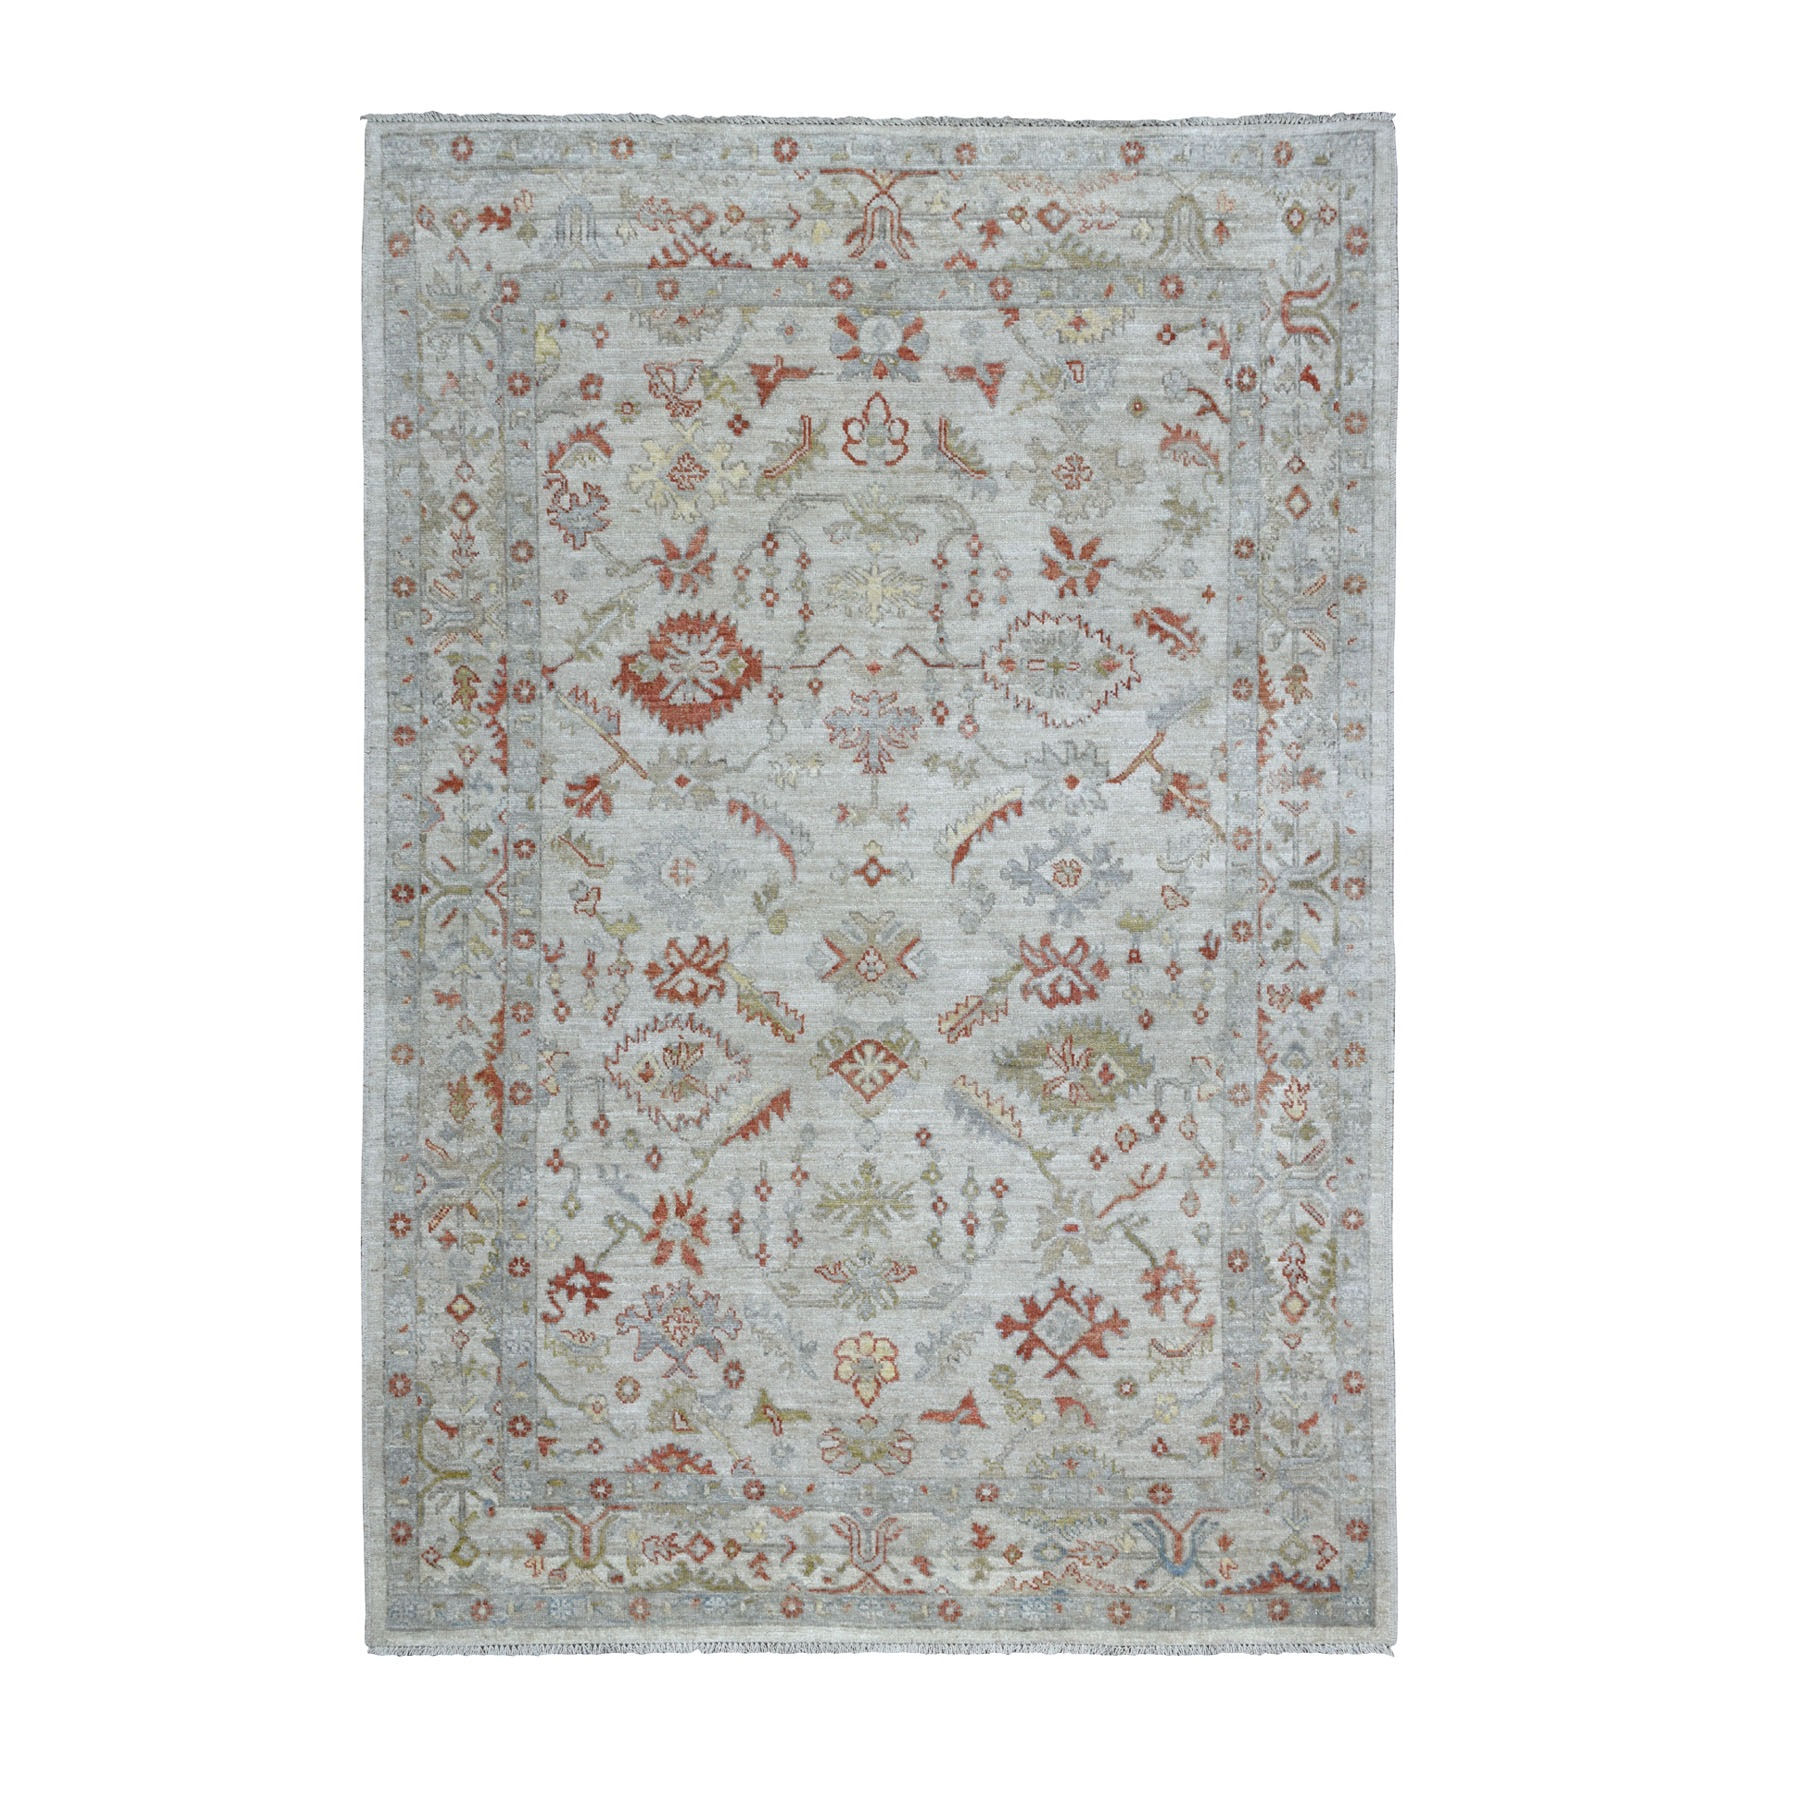 "6'X8'8"" Gray Angora Oushak With Pop Of Color Soft Velvety Wool Hand Knotted Oriental Rug moaece99"